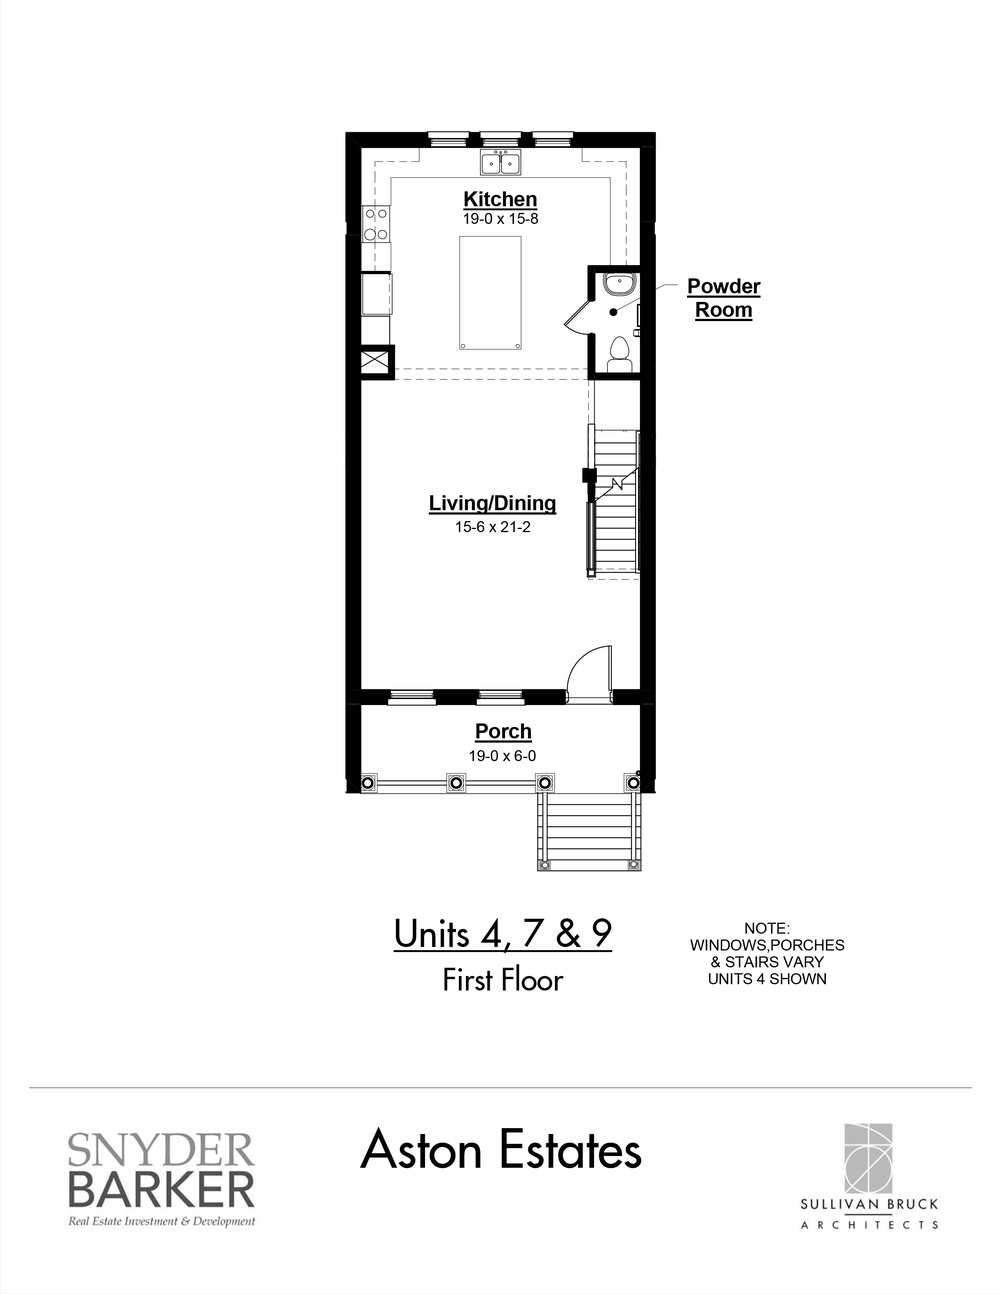 Aston_Estates_Unit_4_7_9_First_Floor.jpg